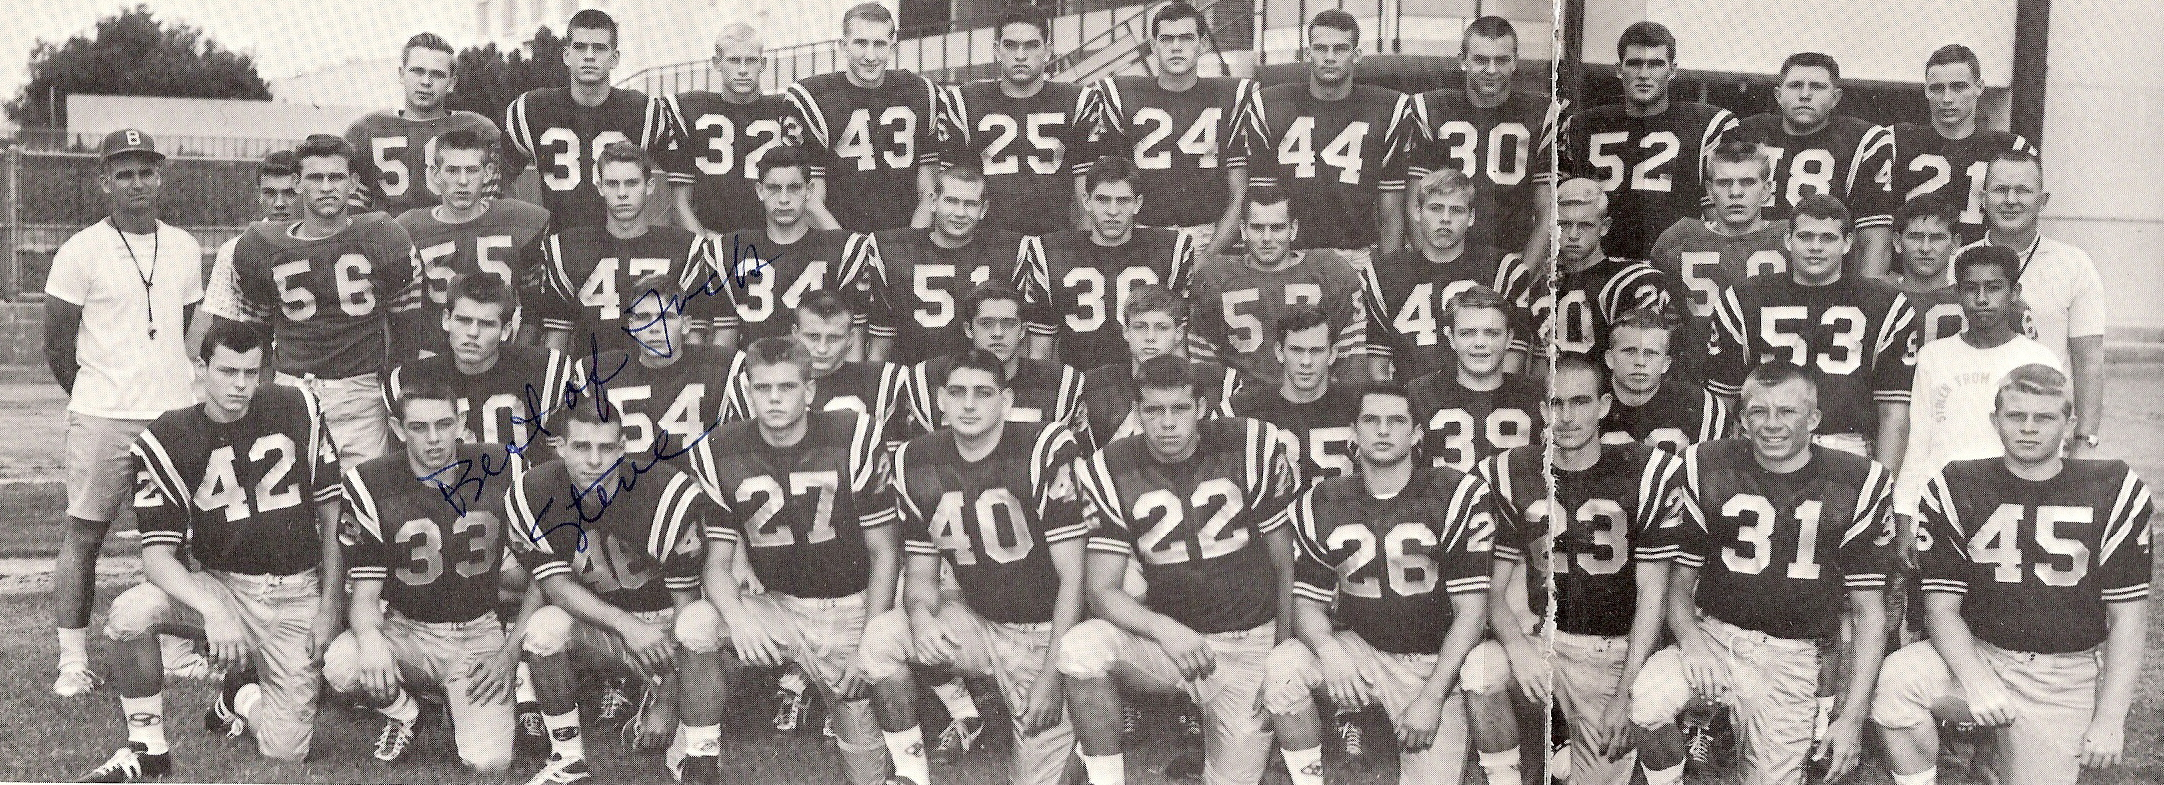 Brea-Olinda's 1962 CIF Championship football team (Photo Courtesy of Terry  Sullivan)